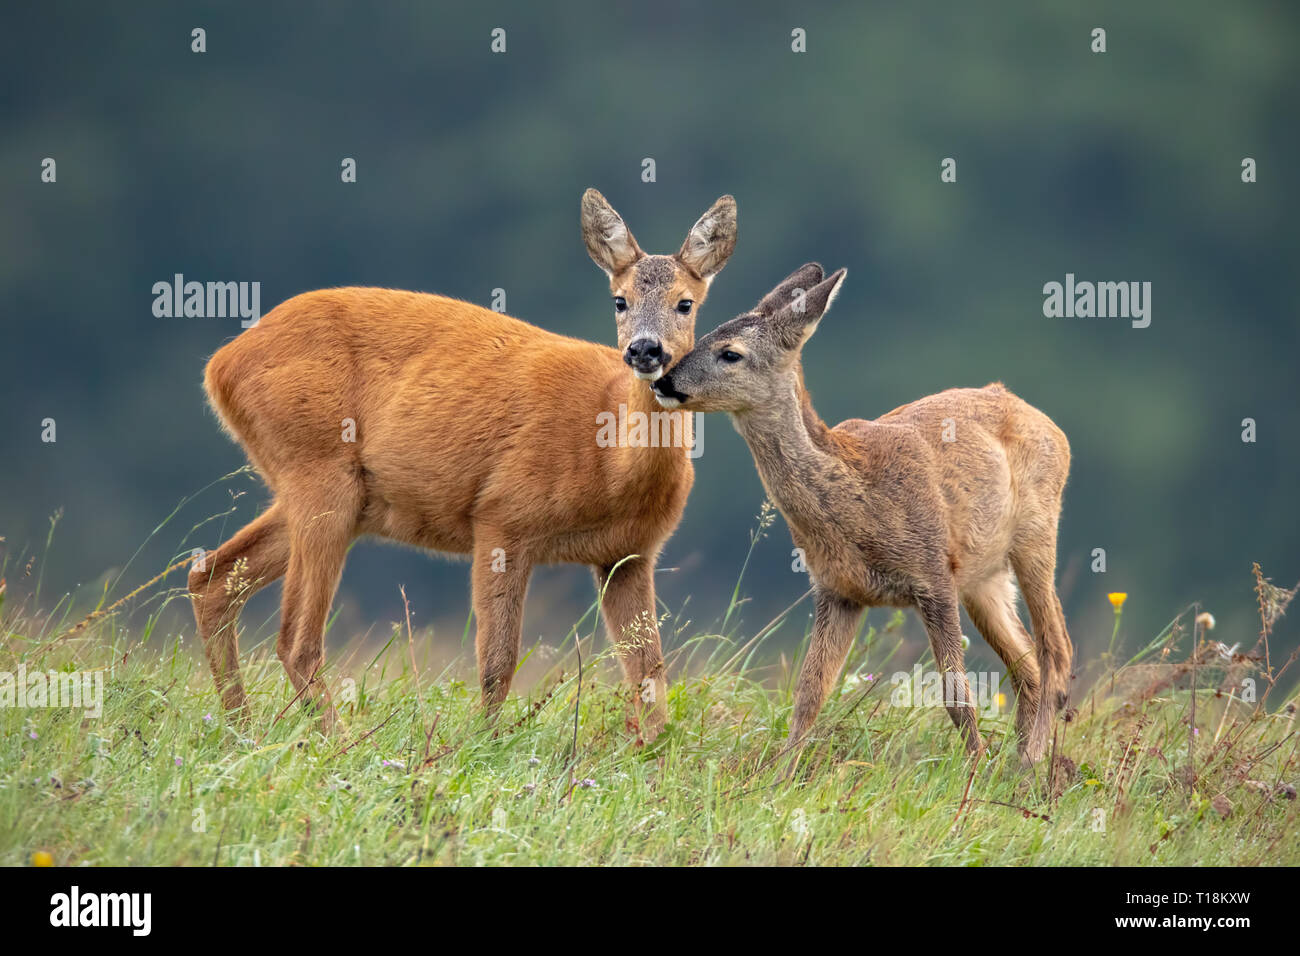 Intimate moment between mother roe deer doe and fawn - Stock Image